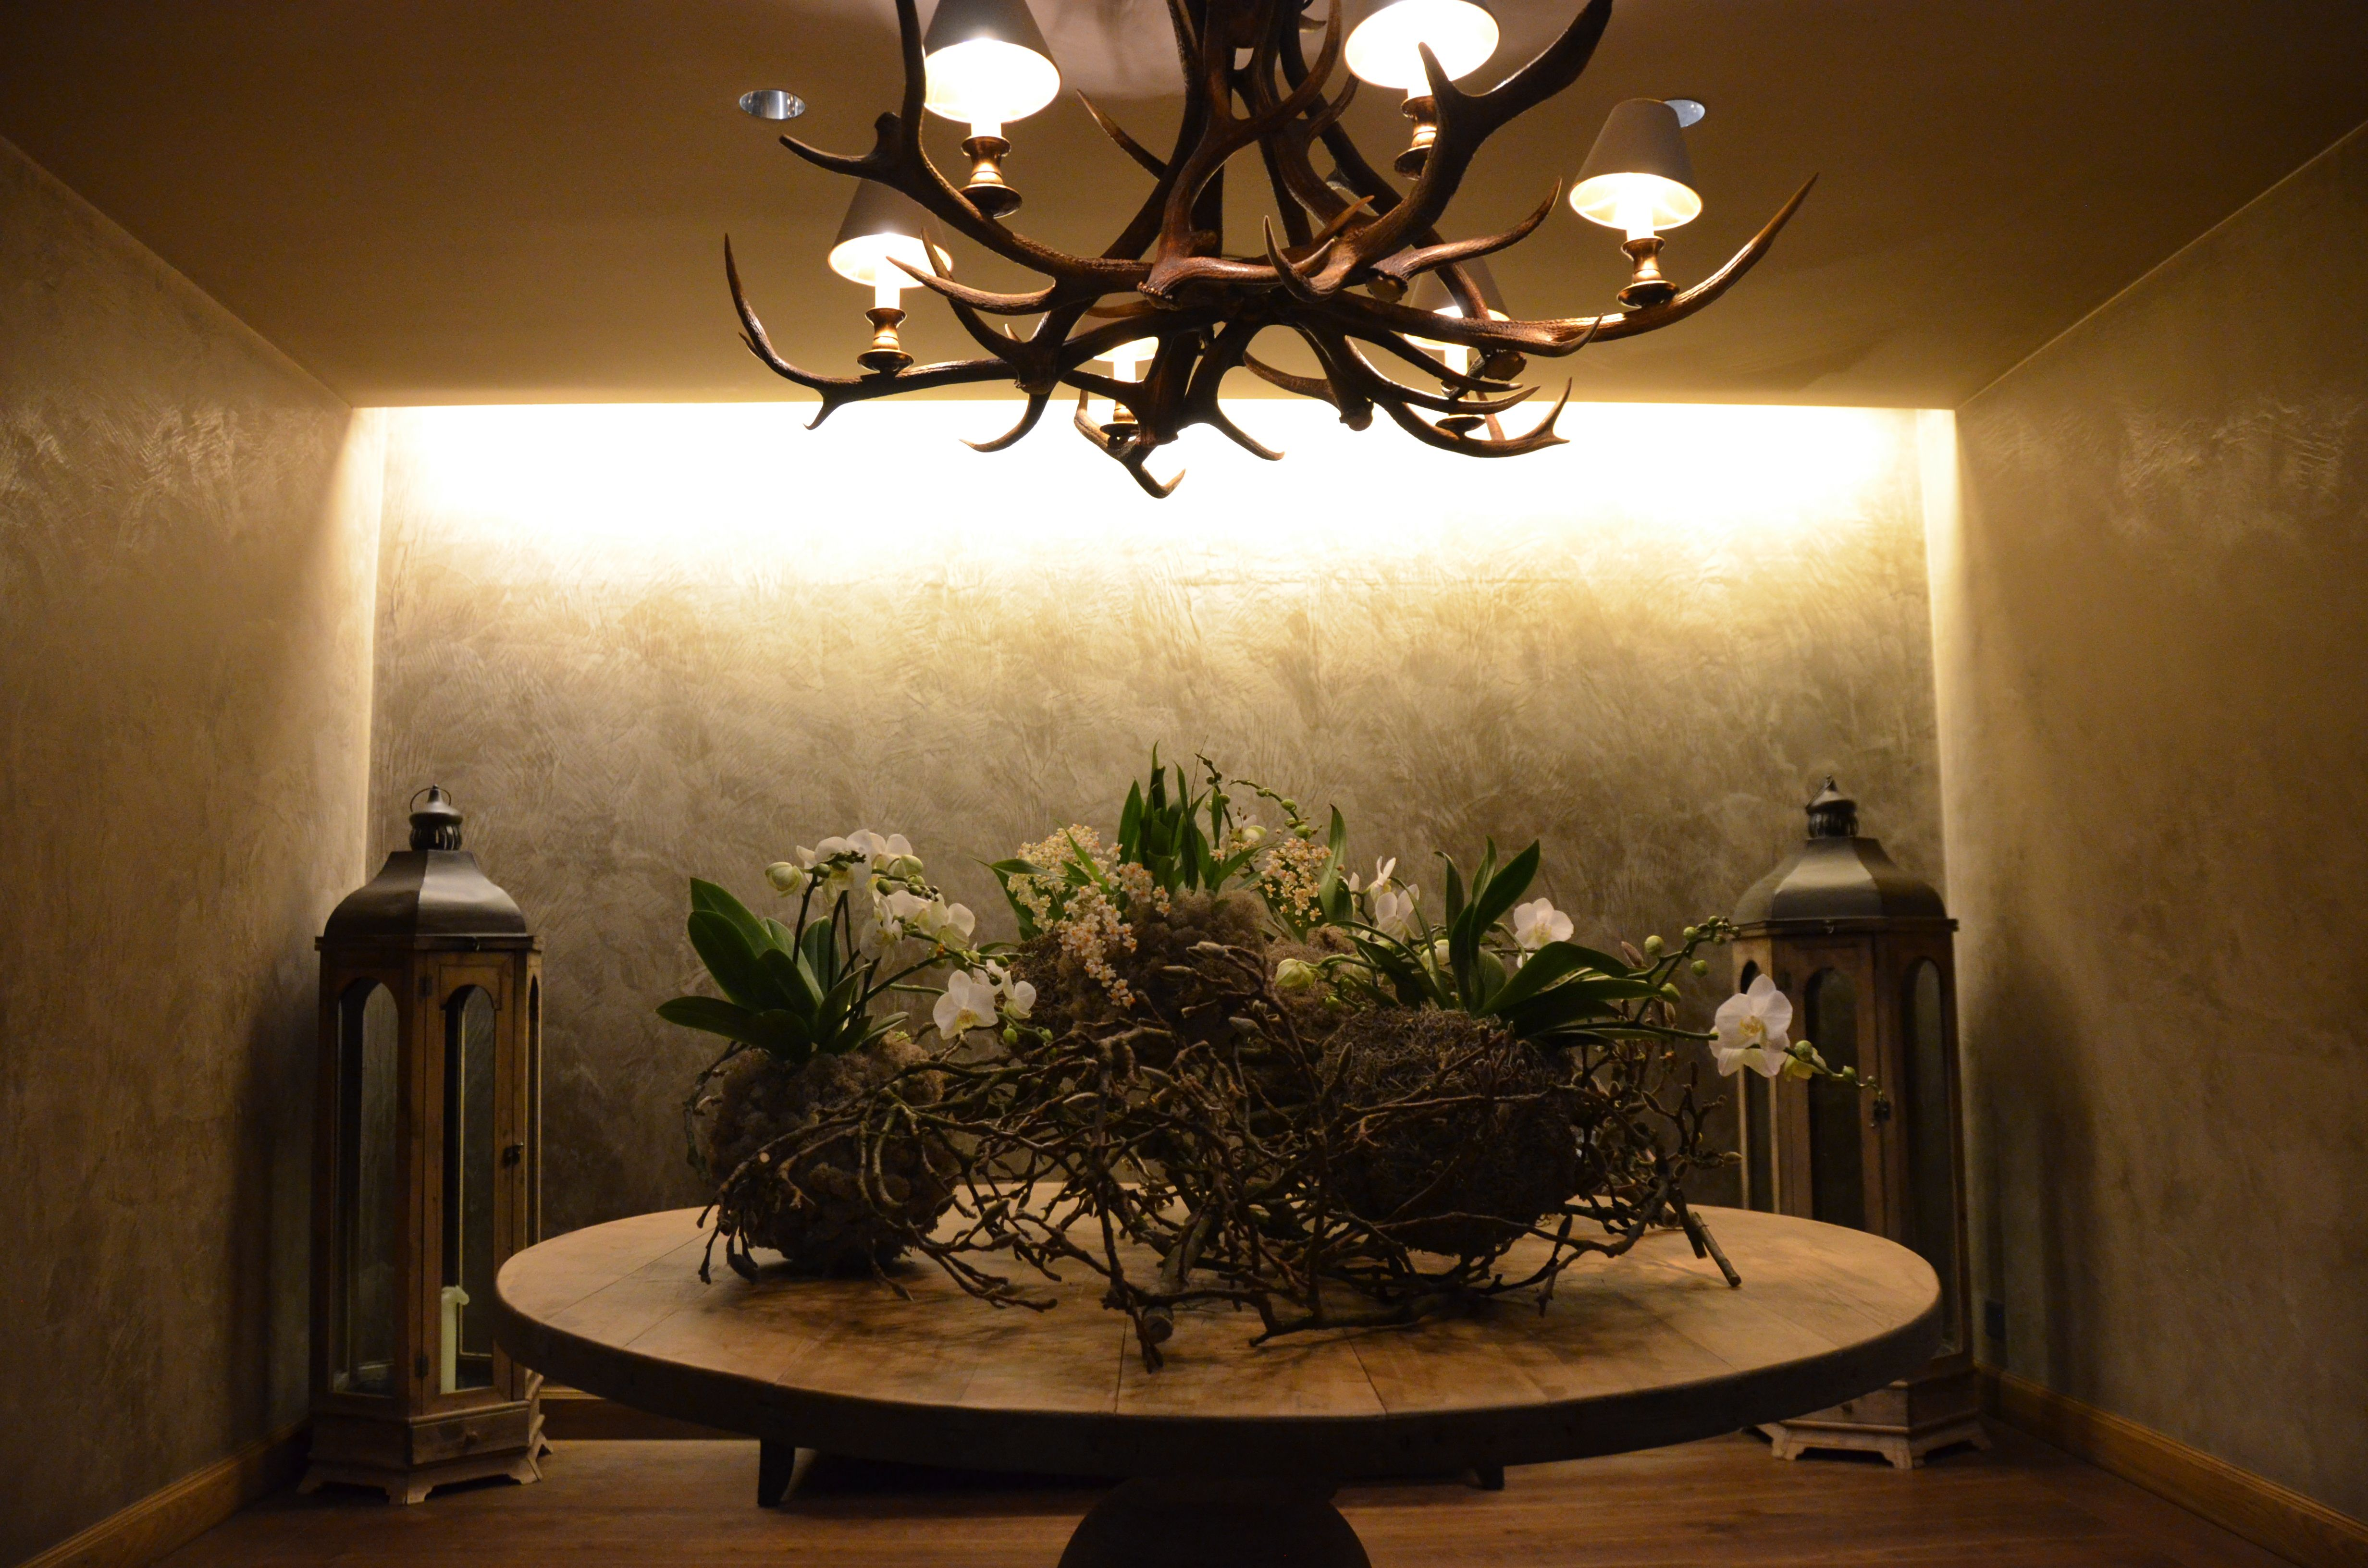 Decoration at our Palace Spa   Floristry at the Gstaad Palace ...